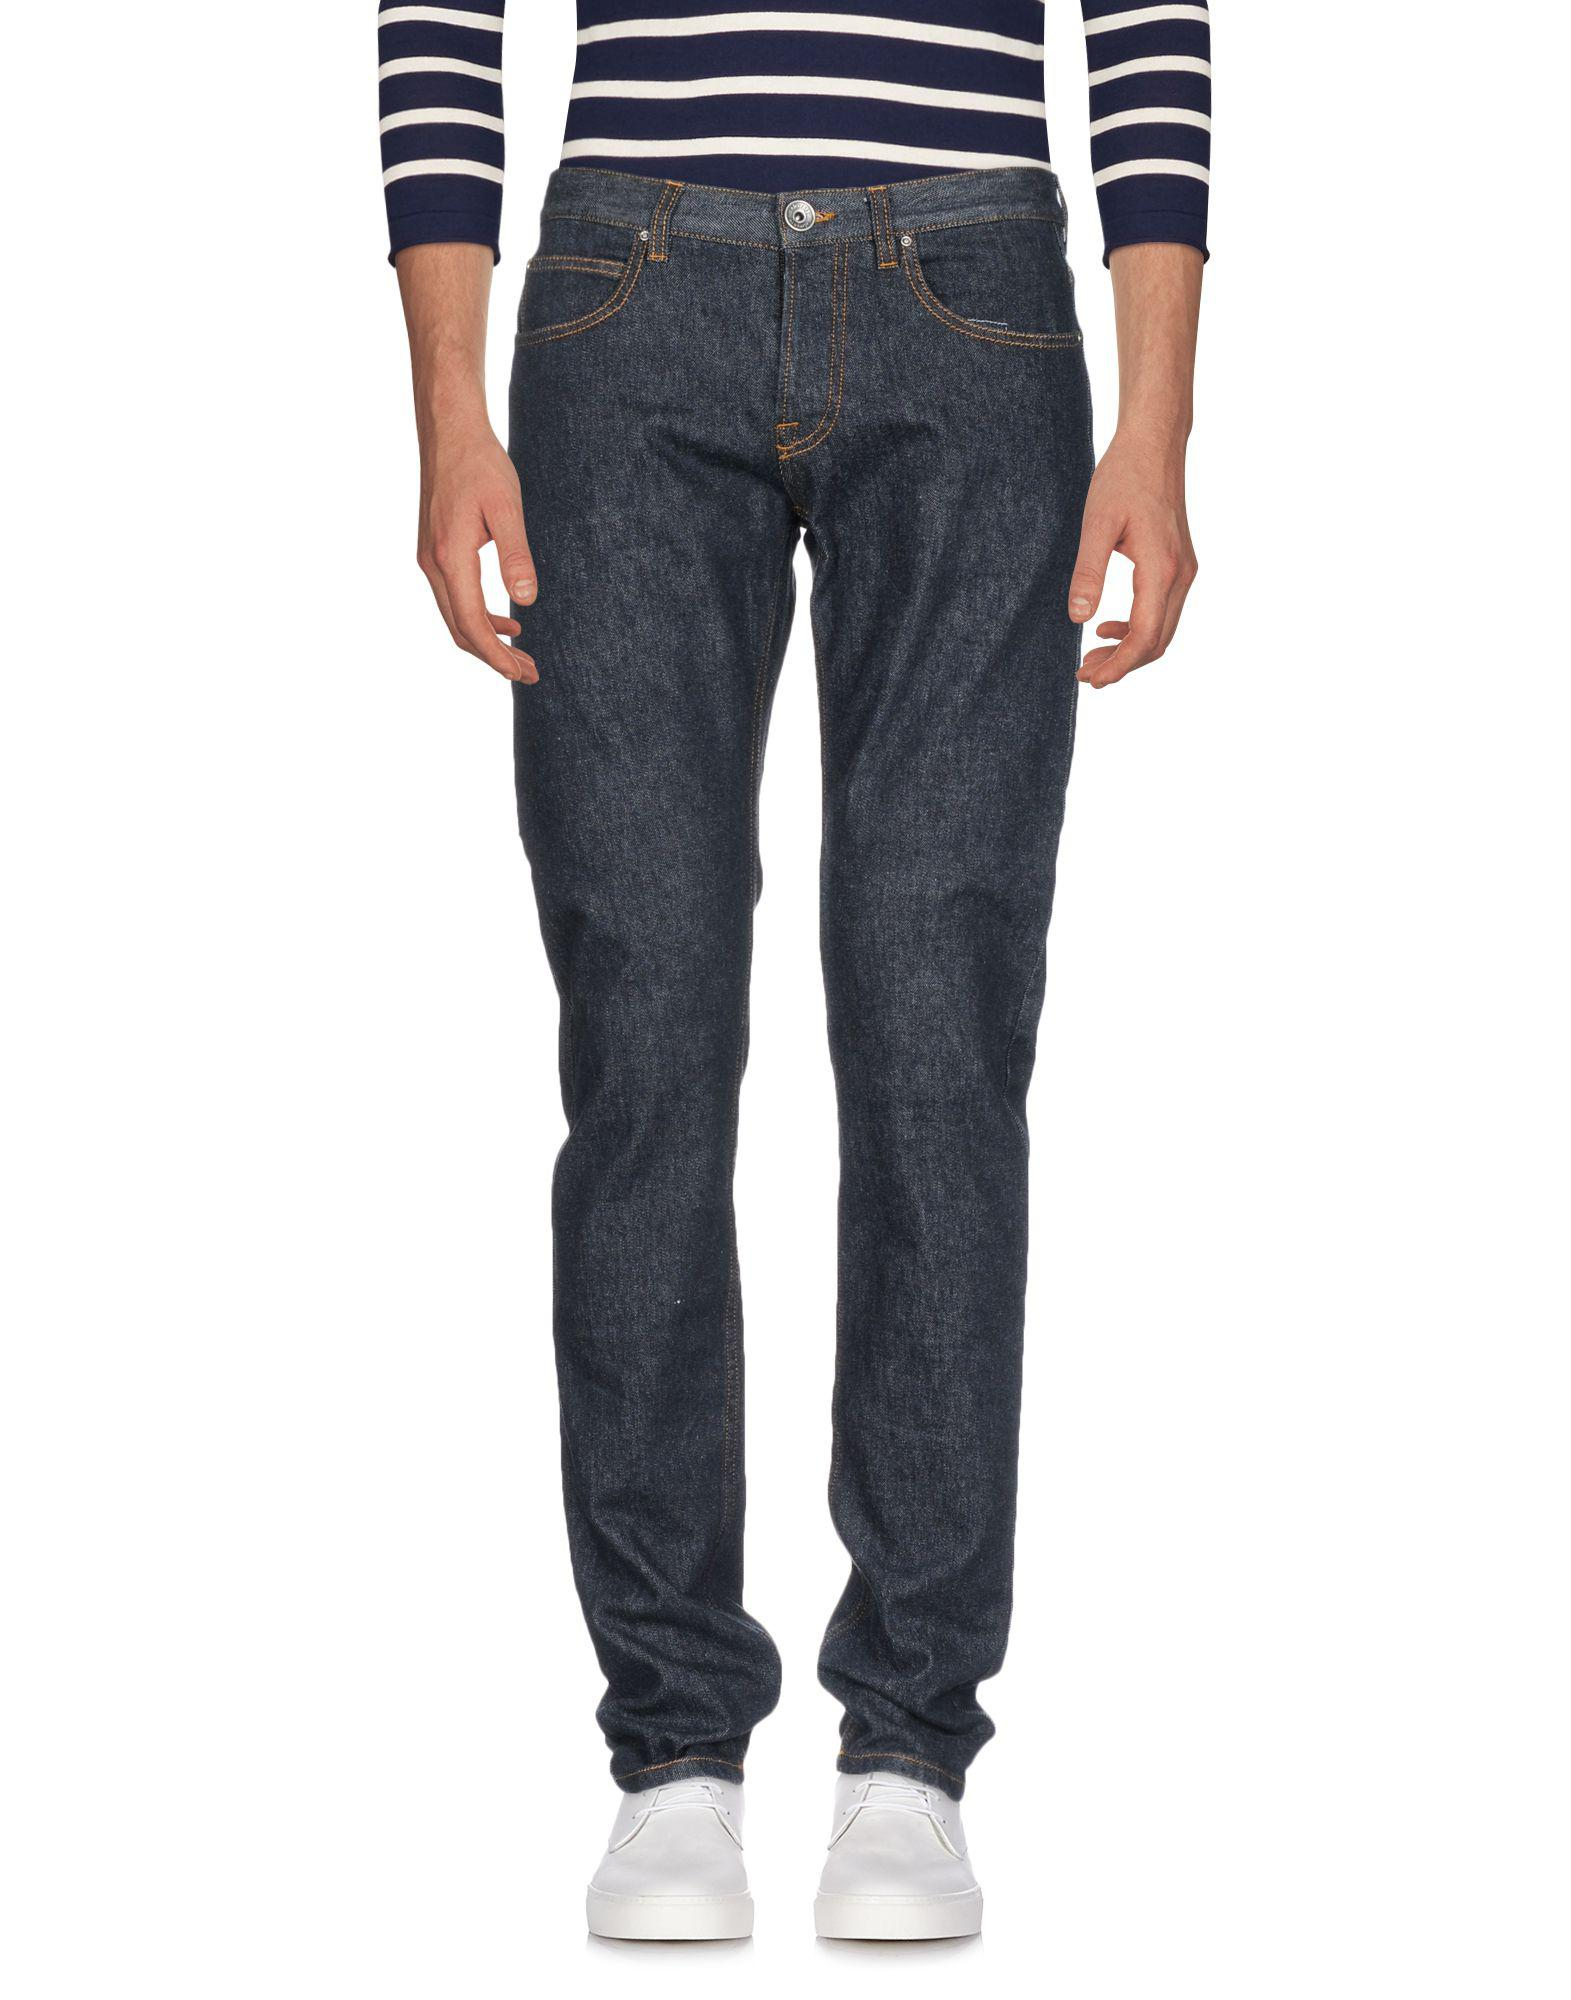 DENIM - Denim trousers Eleventy c9YAVg